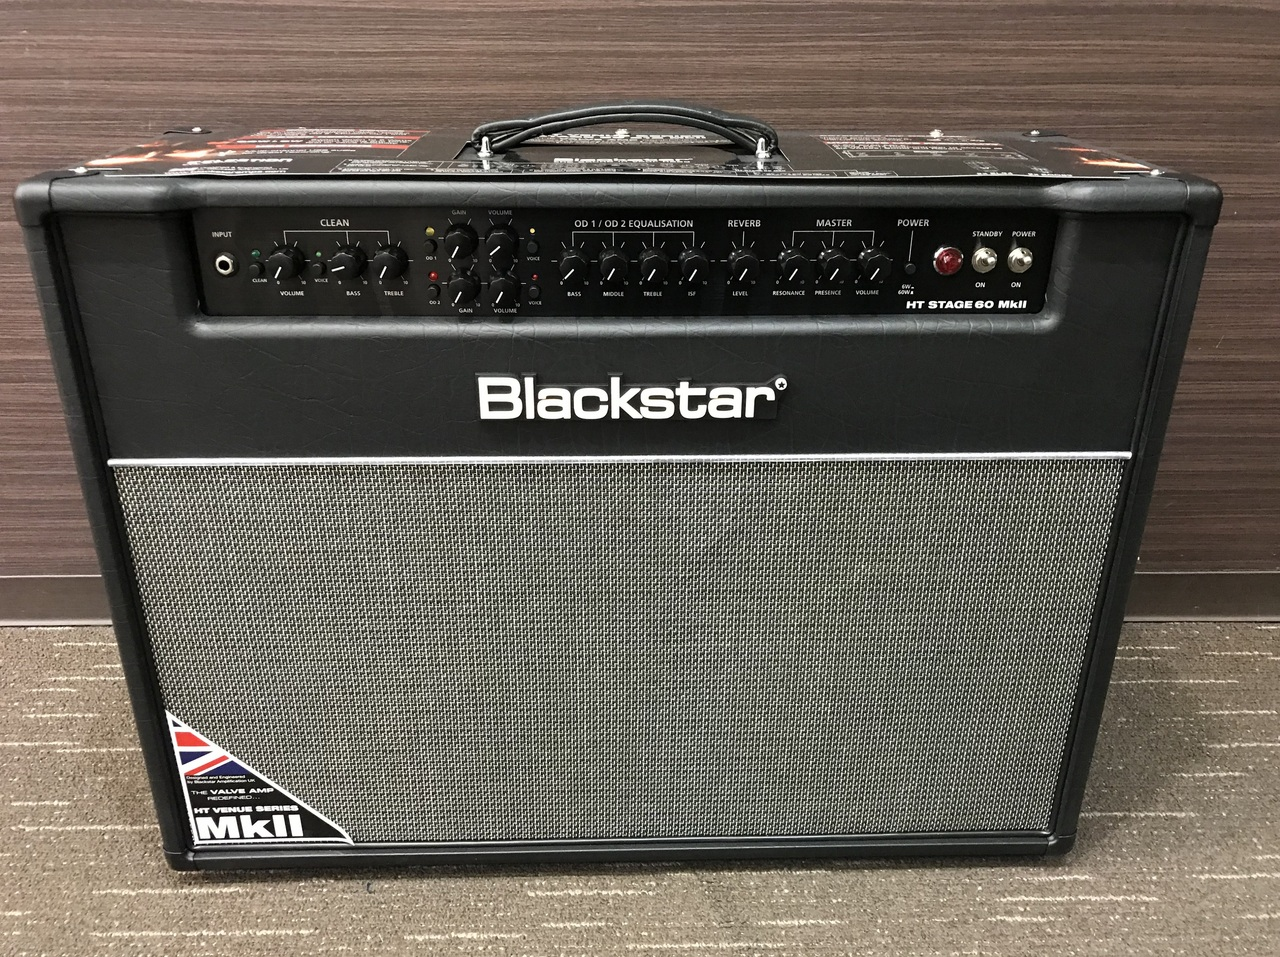 Blackstar HT-STAGE 60 212 HT Venue Series Outlet Specials]